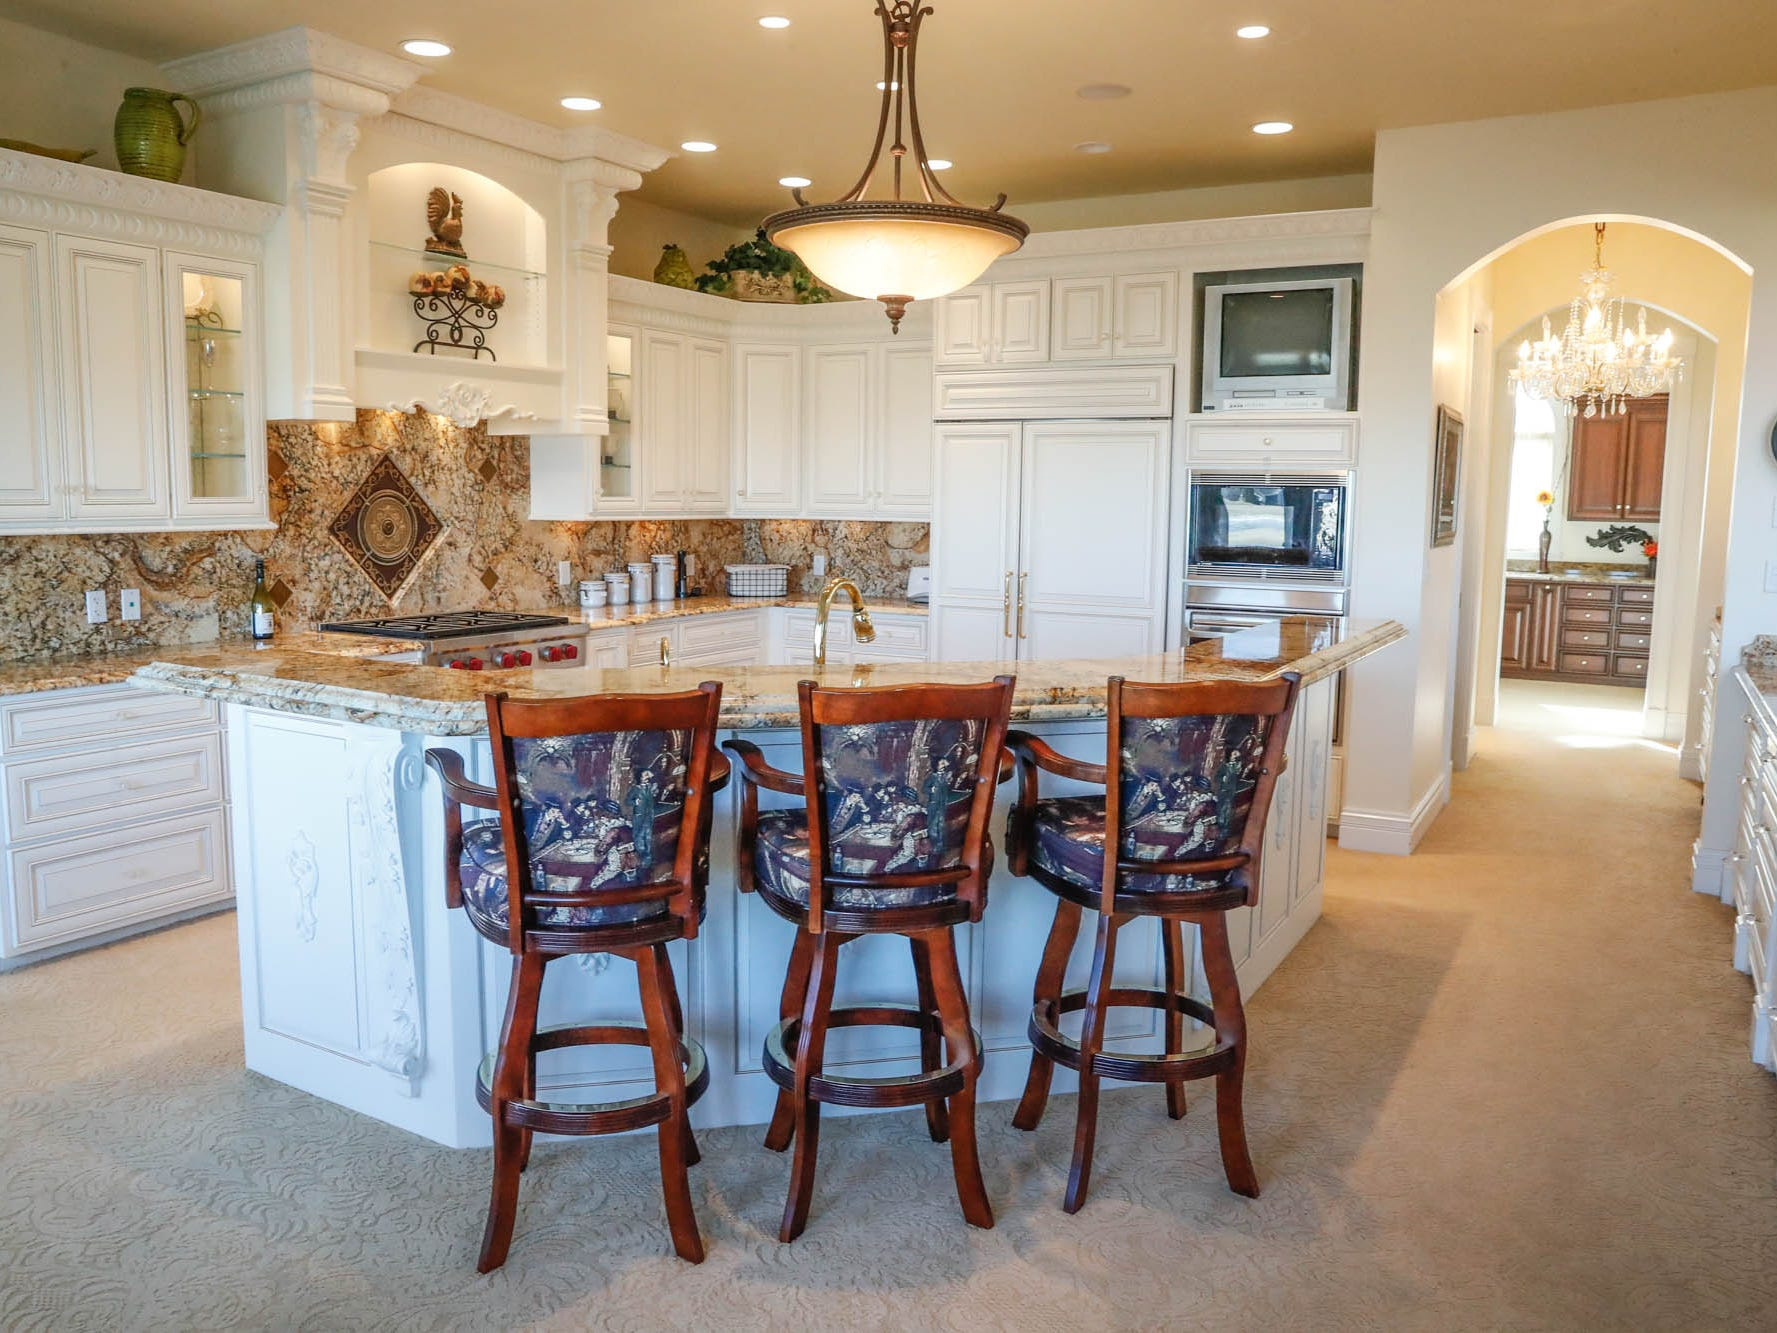 A Greenwood home up for sale at 1216 Stone Ridge Court, Greenwood, Ind., features a large kitchen with breakfast bar, butters pantry, and lots of storage, on Wednesday, Jan. 30, 2019. The home features 8,234 square feet, four bedrooms, two master suits, a 10 car garage, and exercise room.